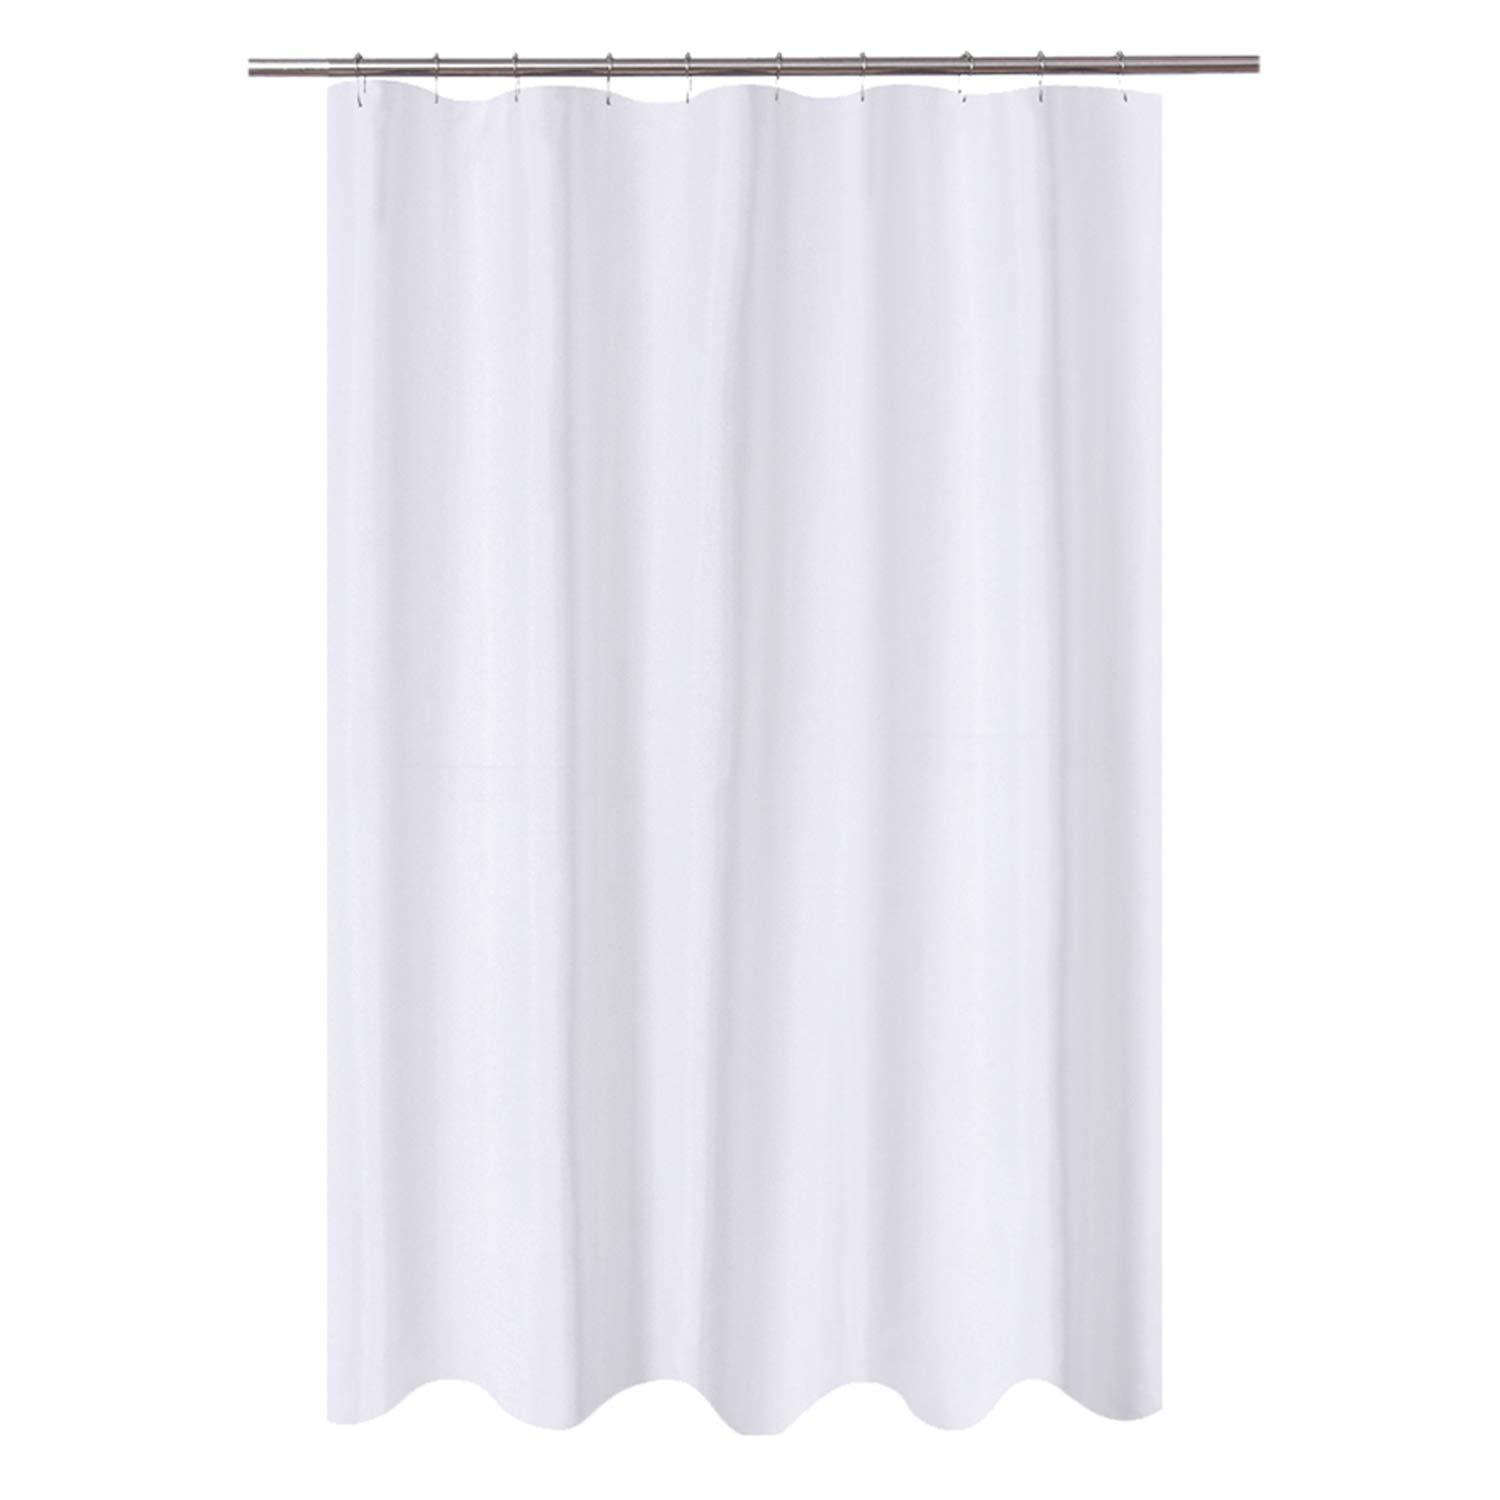 n y home fabric shower curtain liner 54 x 72 inches bath stall size hotel quality washable water repellent white bathroom curtains with grommets